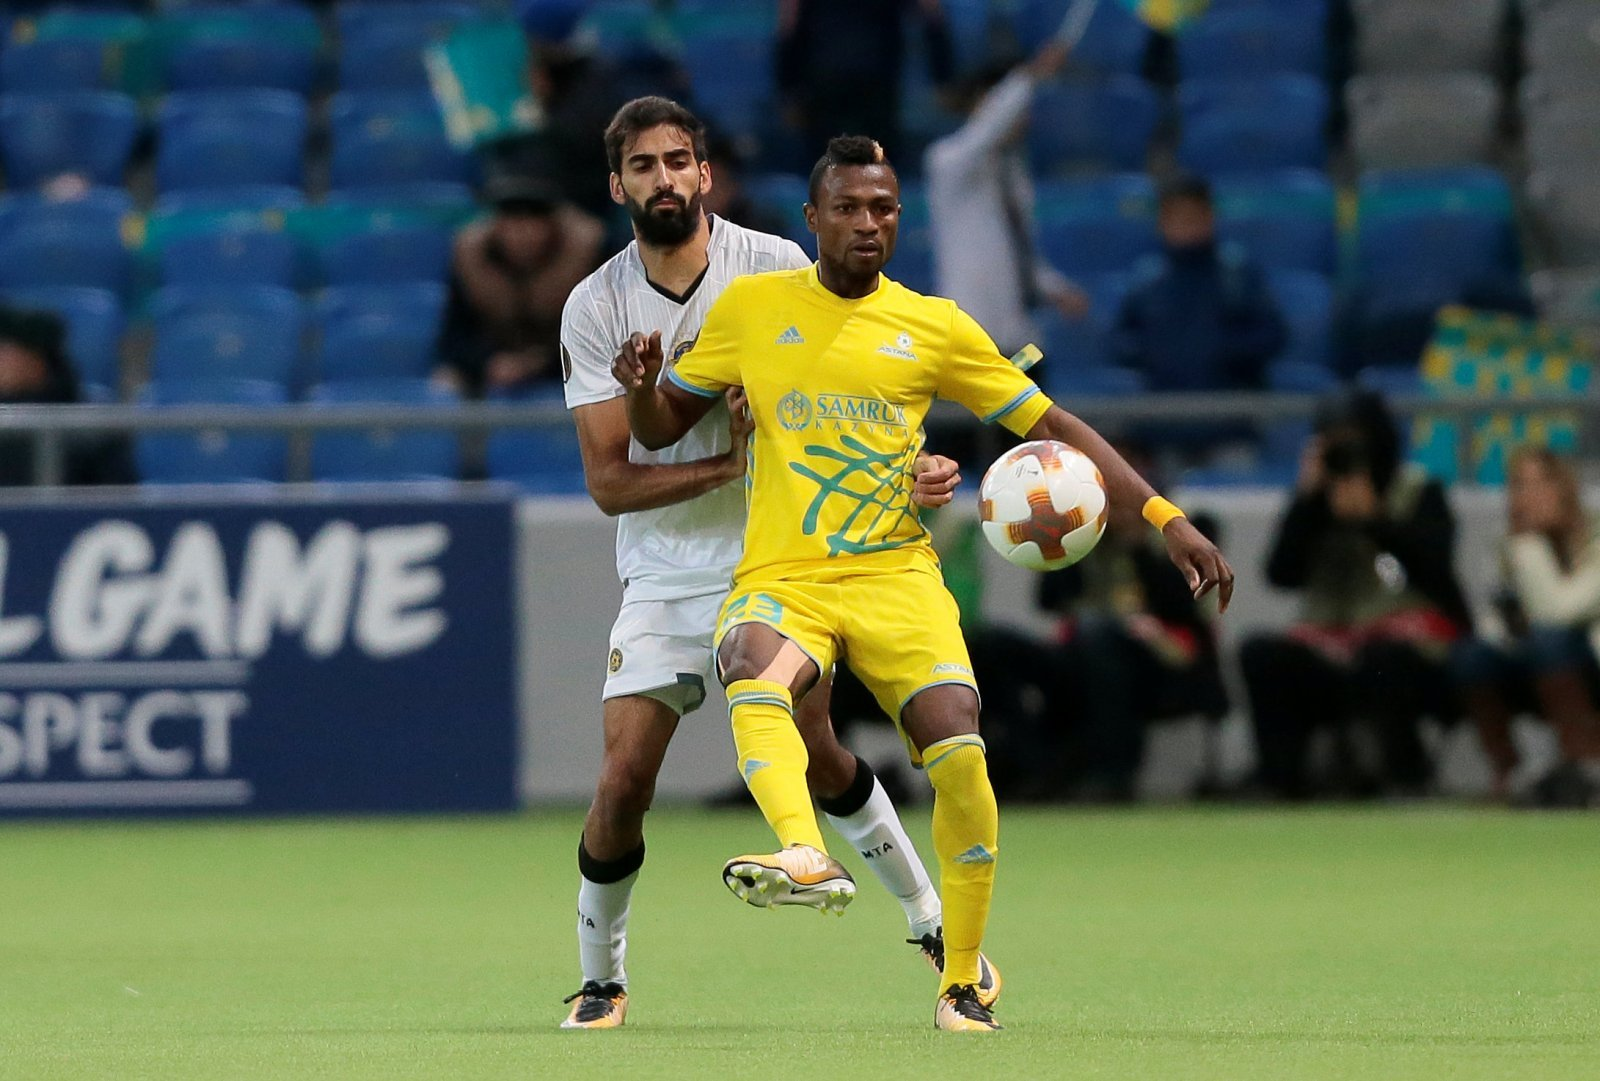 Celtic: Lennon shouldn't waste his time on Patrick Twumasi